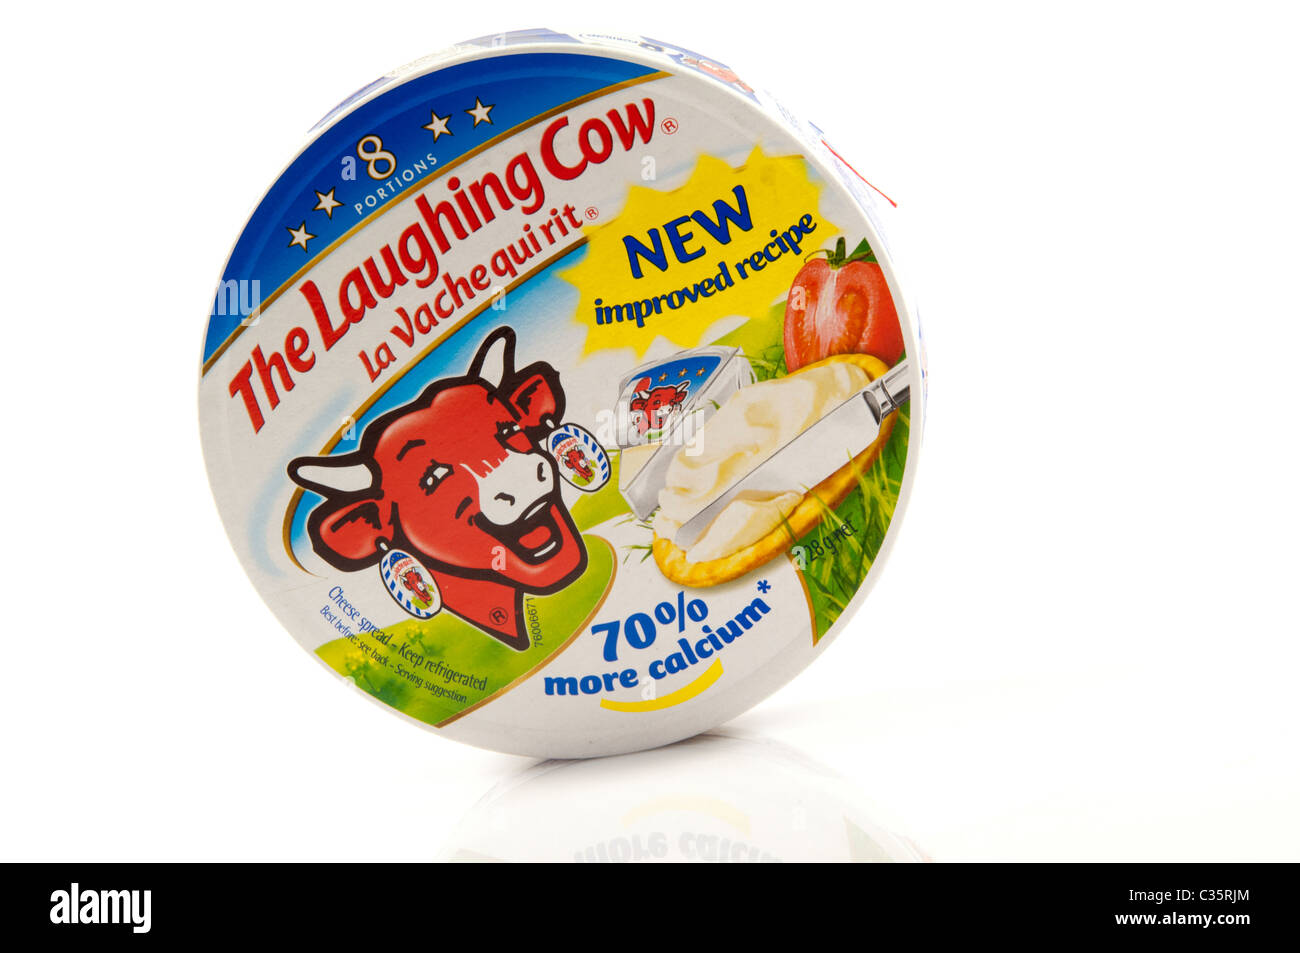 The laughing cow soft cheese in white background - Stock Image